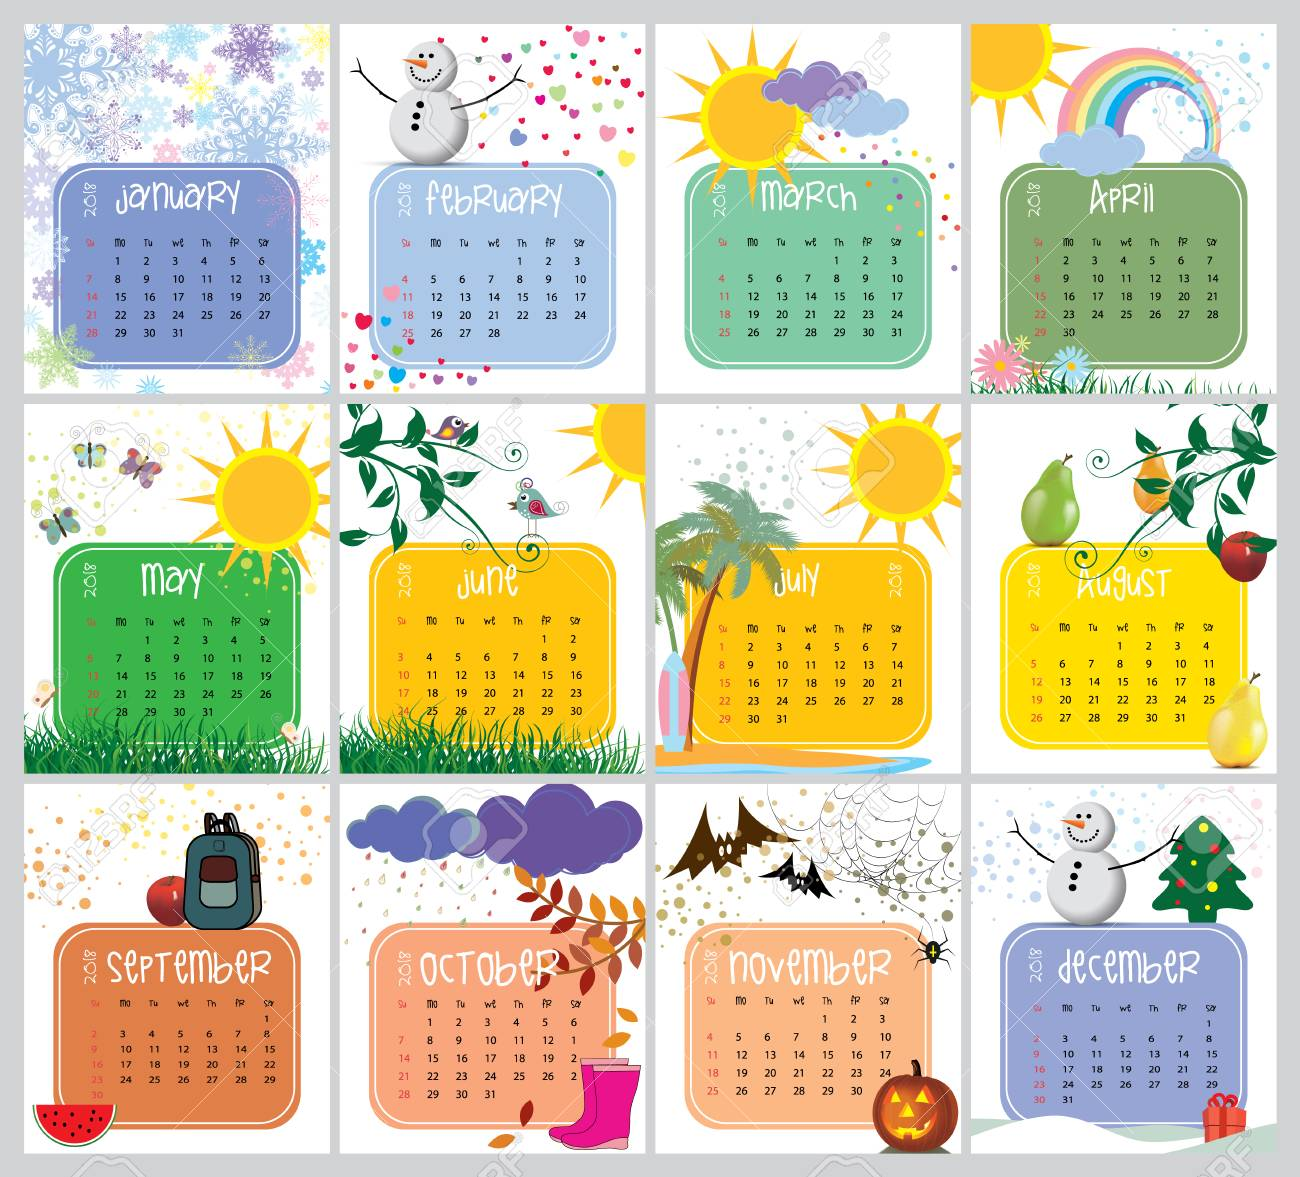 Vector Calendar With A Unique Design For 2018 Royalty Free Cliparts